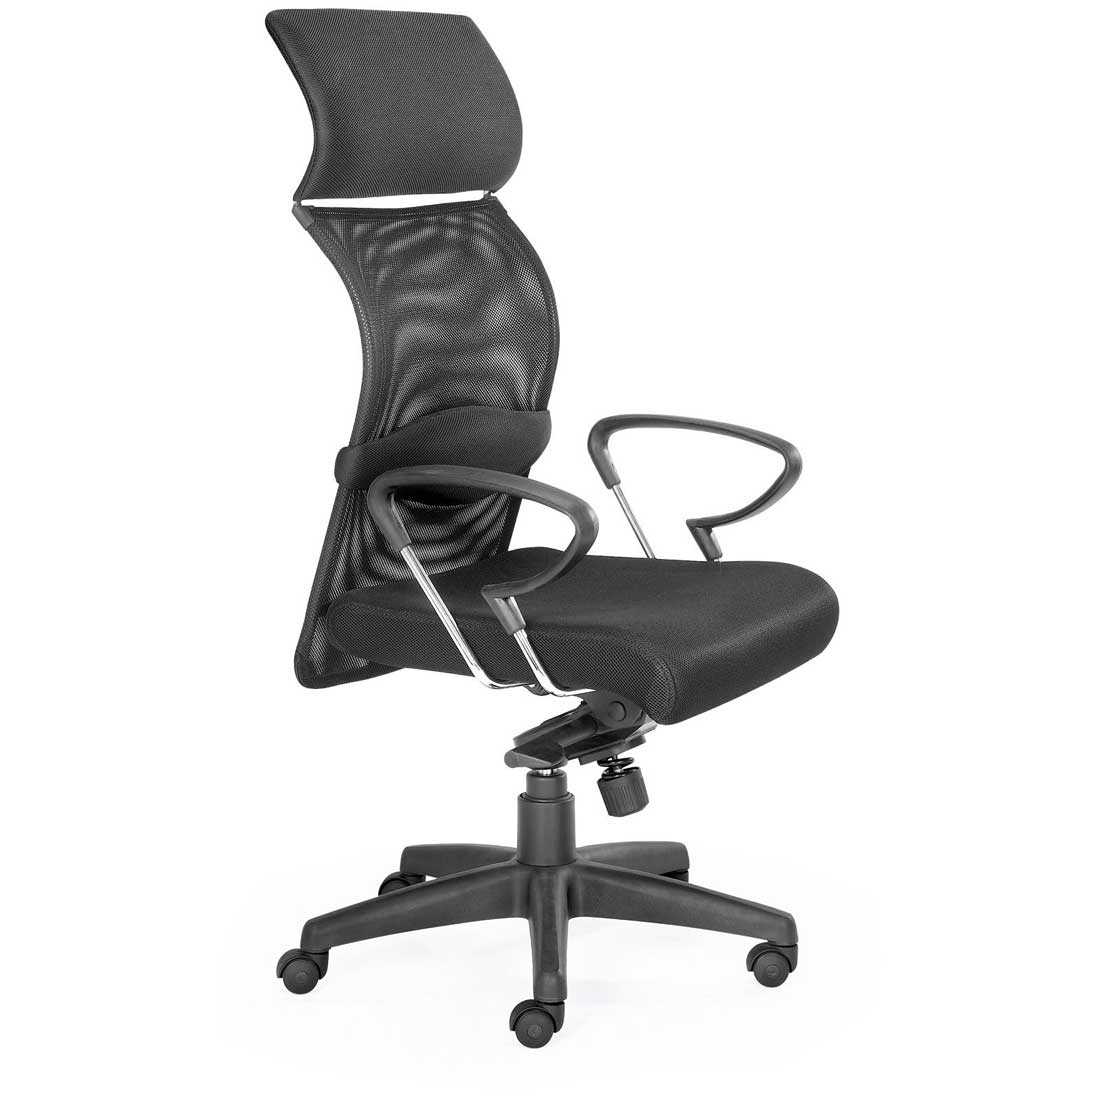 Ergonomic Computer Chair Desk Chairs Ergonomic Computer Simple Home Decoration